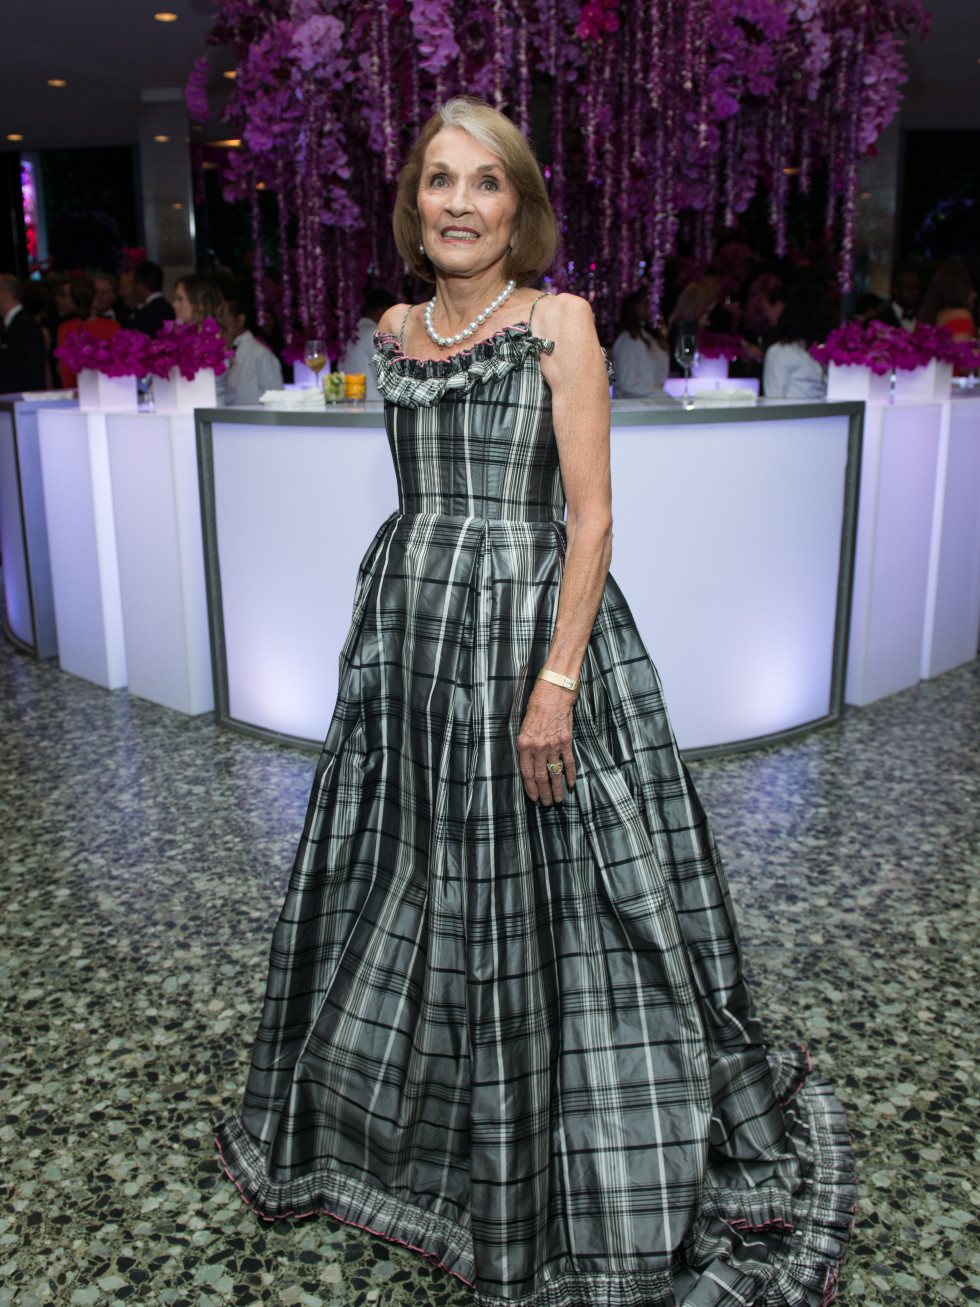 Mickie Huebsch MFAH Grand Gala Ball 2017